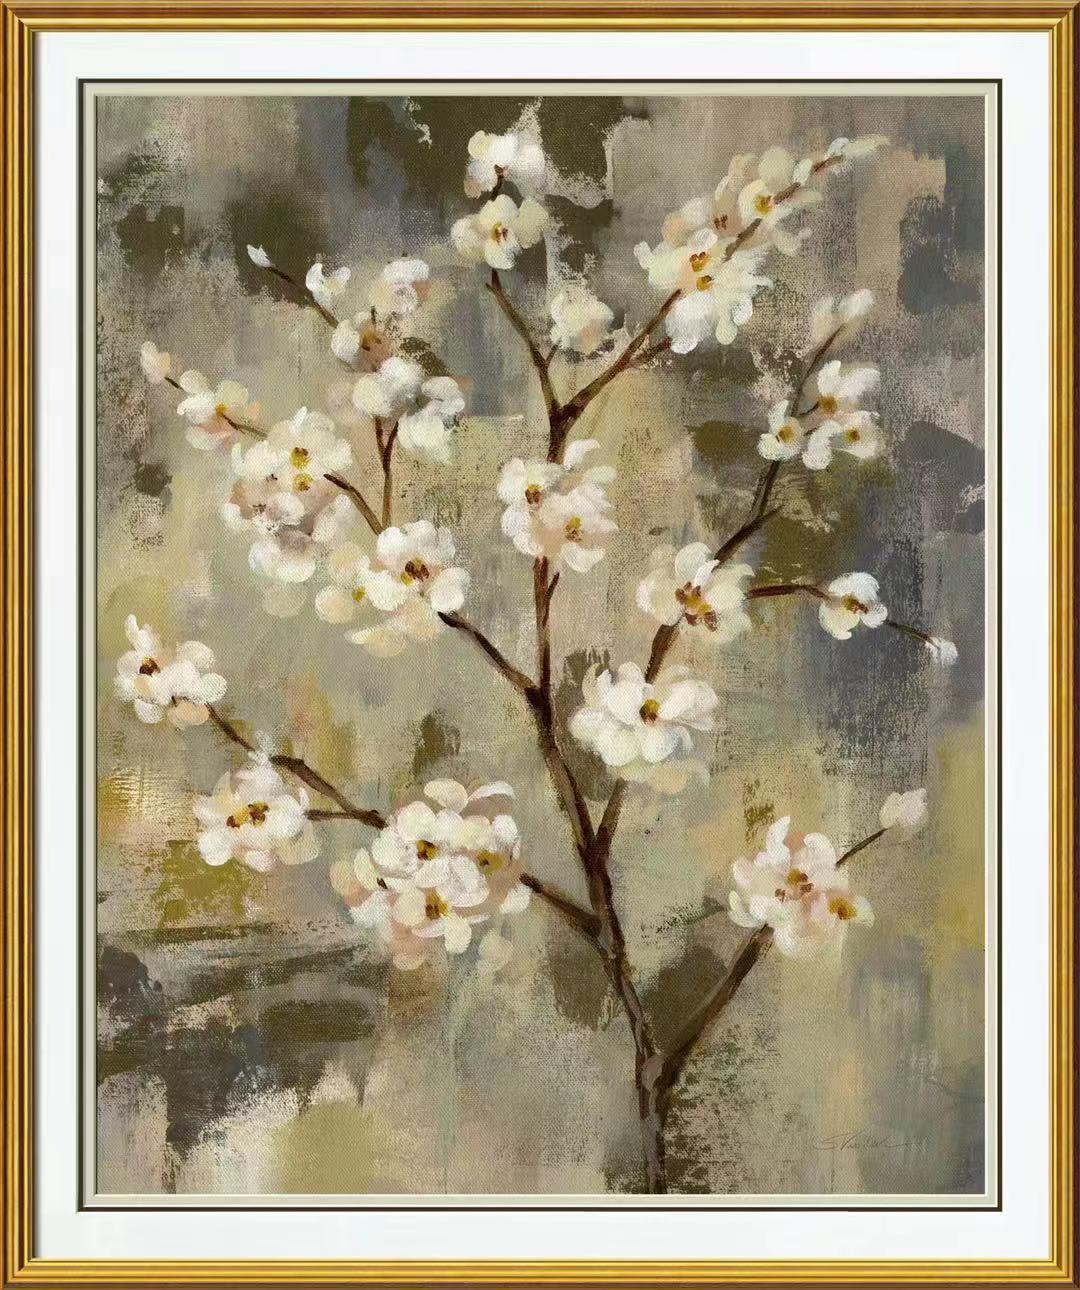 China Abstract Oil Painting Of Flowers Paint Canvas Wall Art China Hand Oil Painting And Unique Oil Painting Price